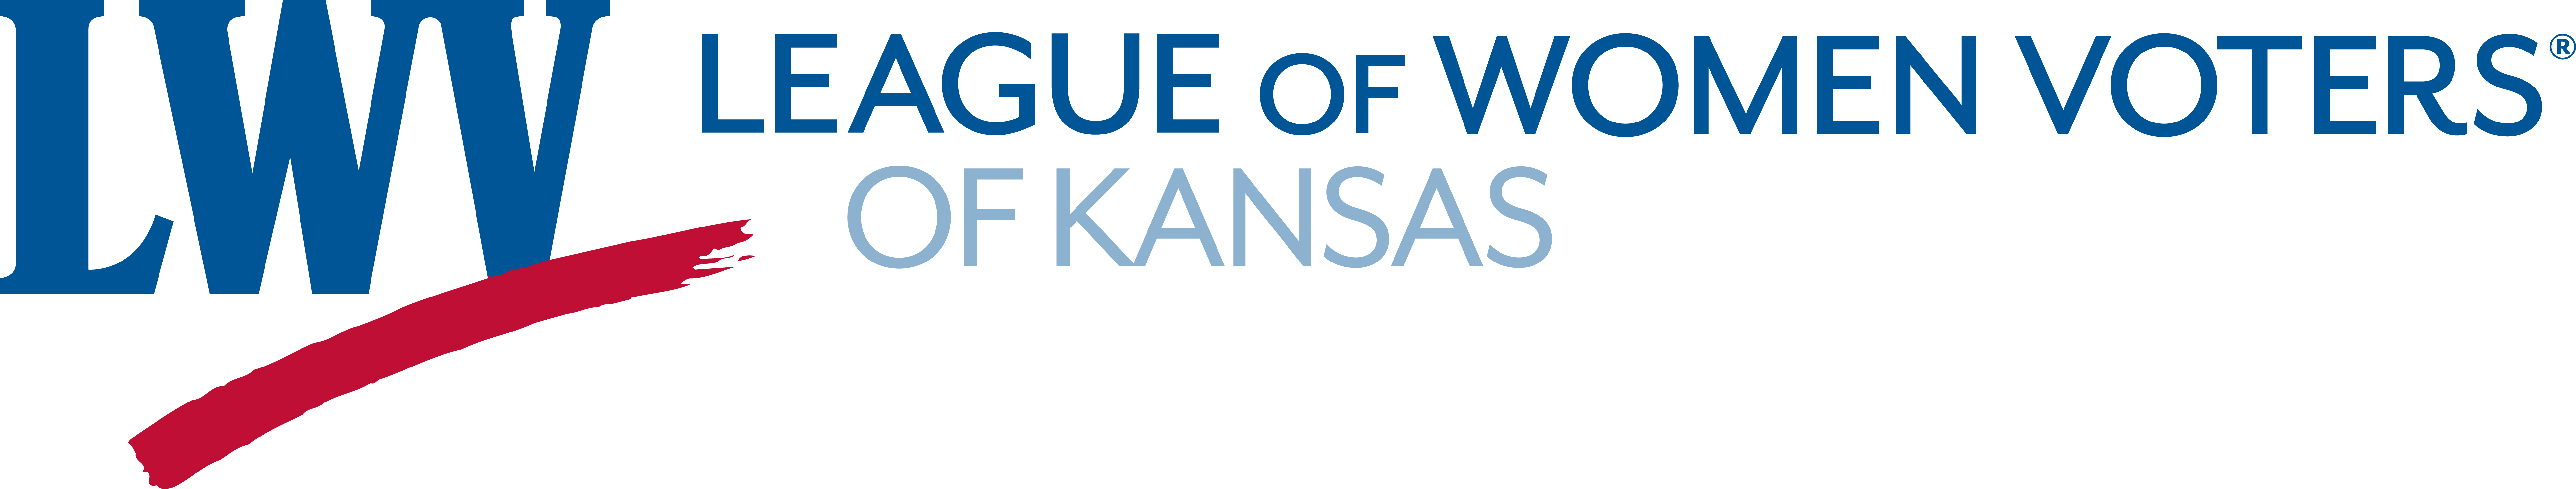 League of Women Voters of Kansas